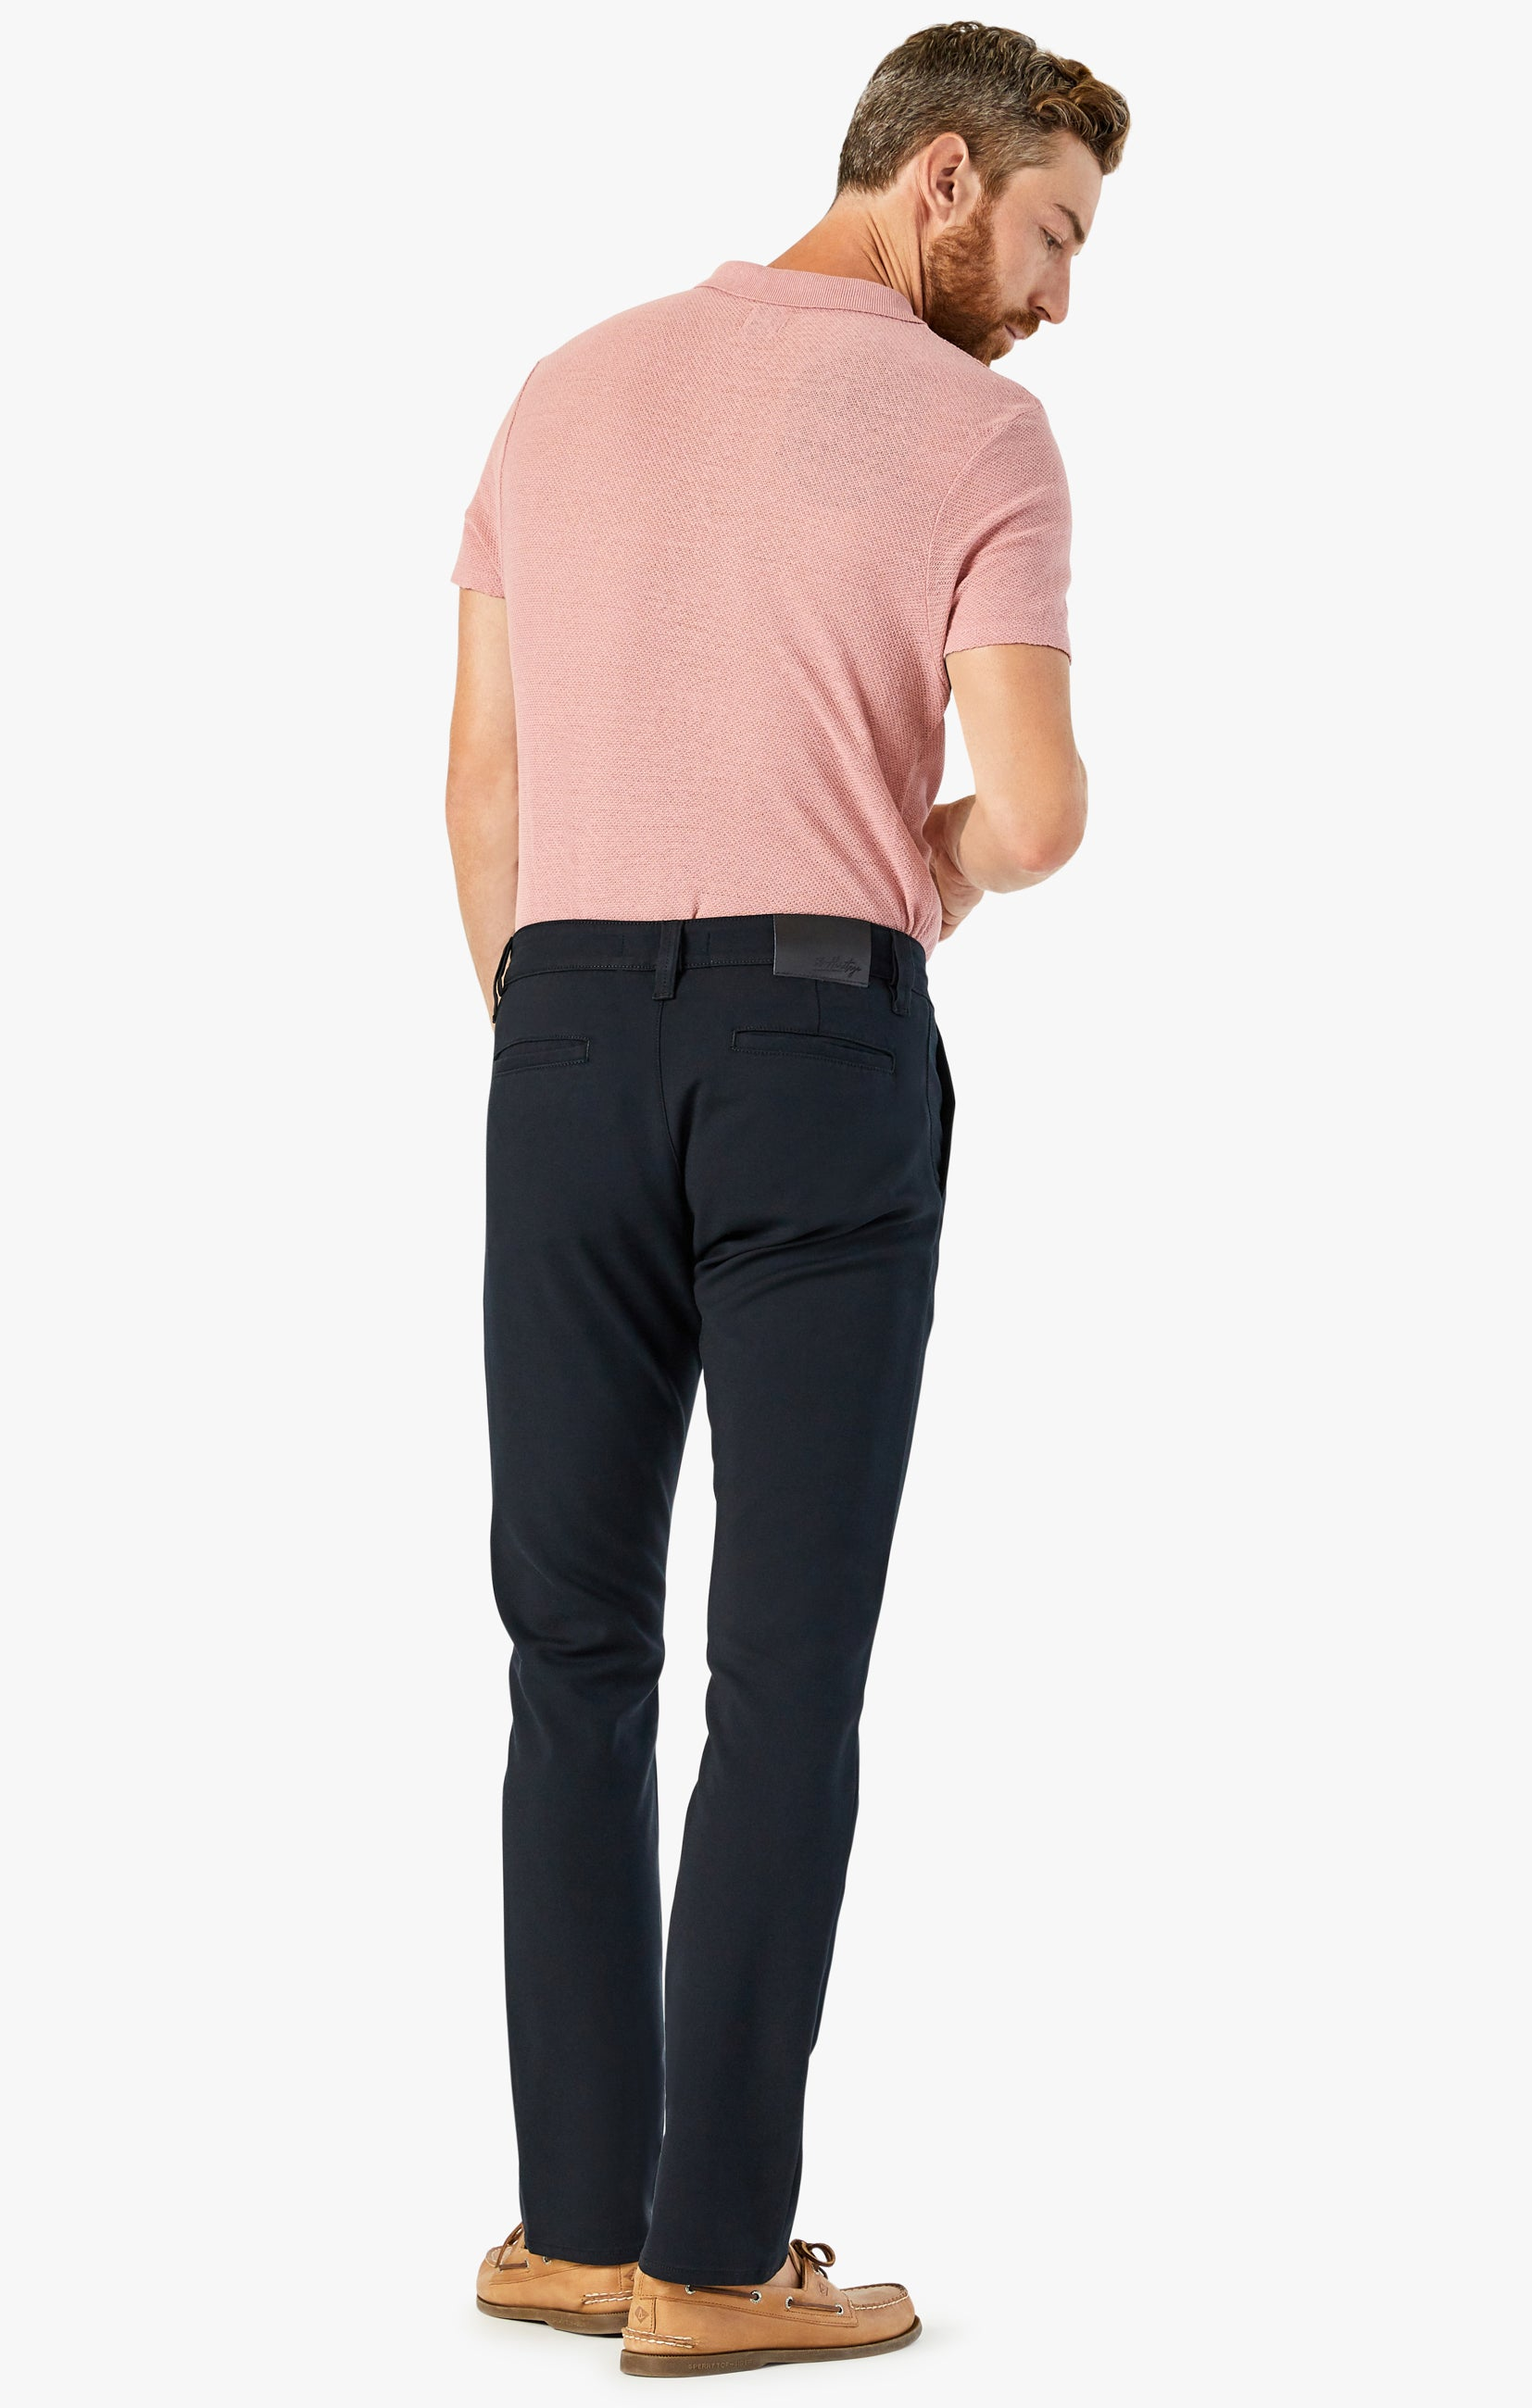 Verona Chino Pants in Black High Flyer Image 4